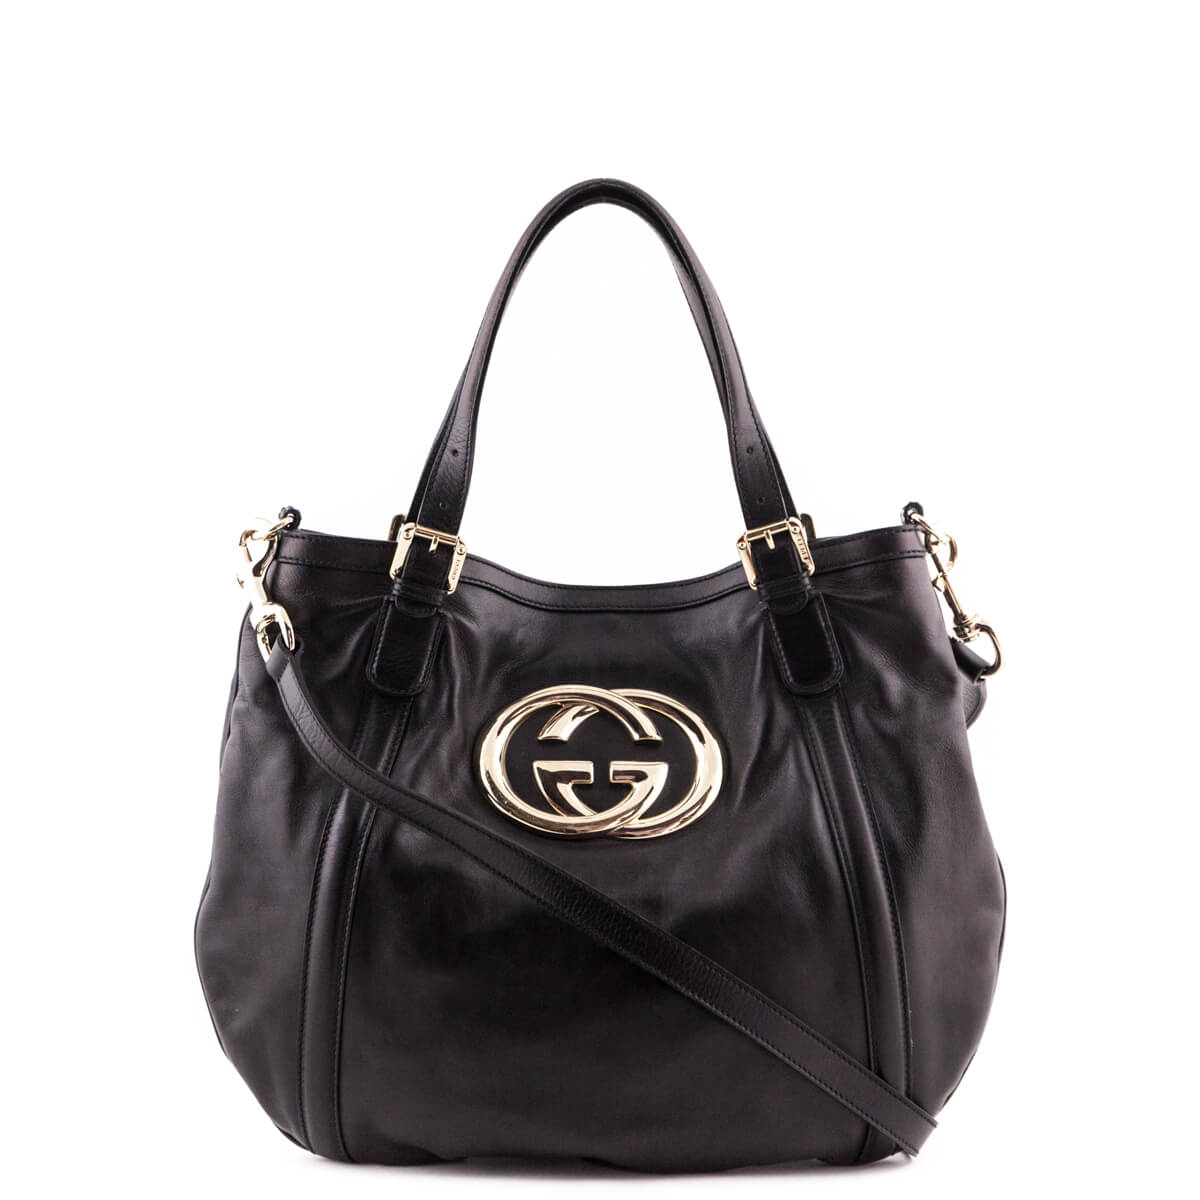 0bb9efa97bf4 Gucci Black Leather Interlocking GG Tote - LOVE that BAG - Preowned  Authentic Designer Handbags ...